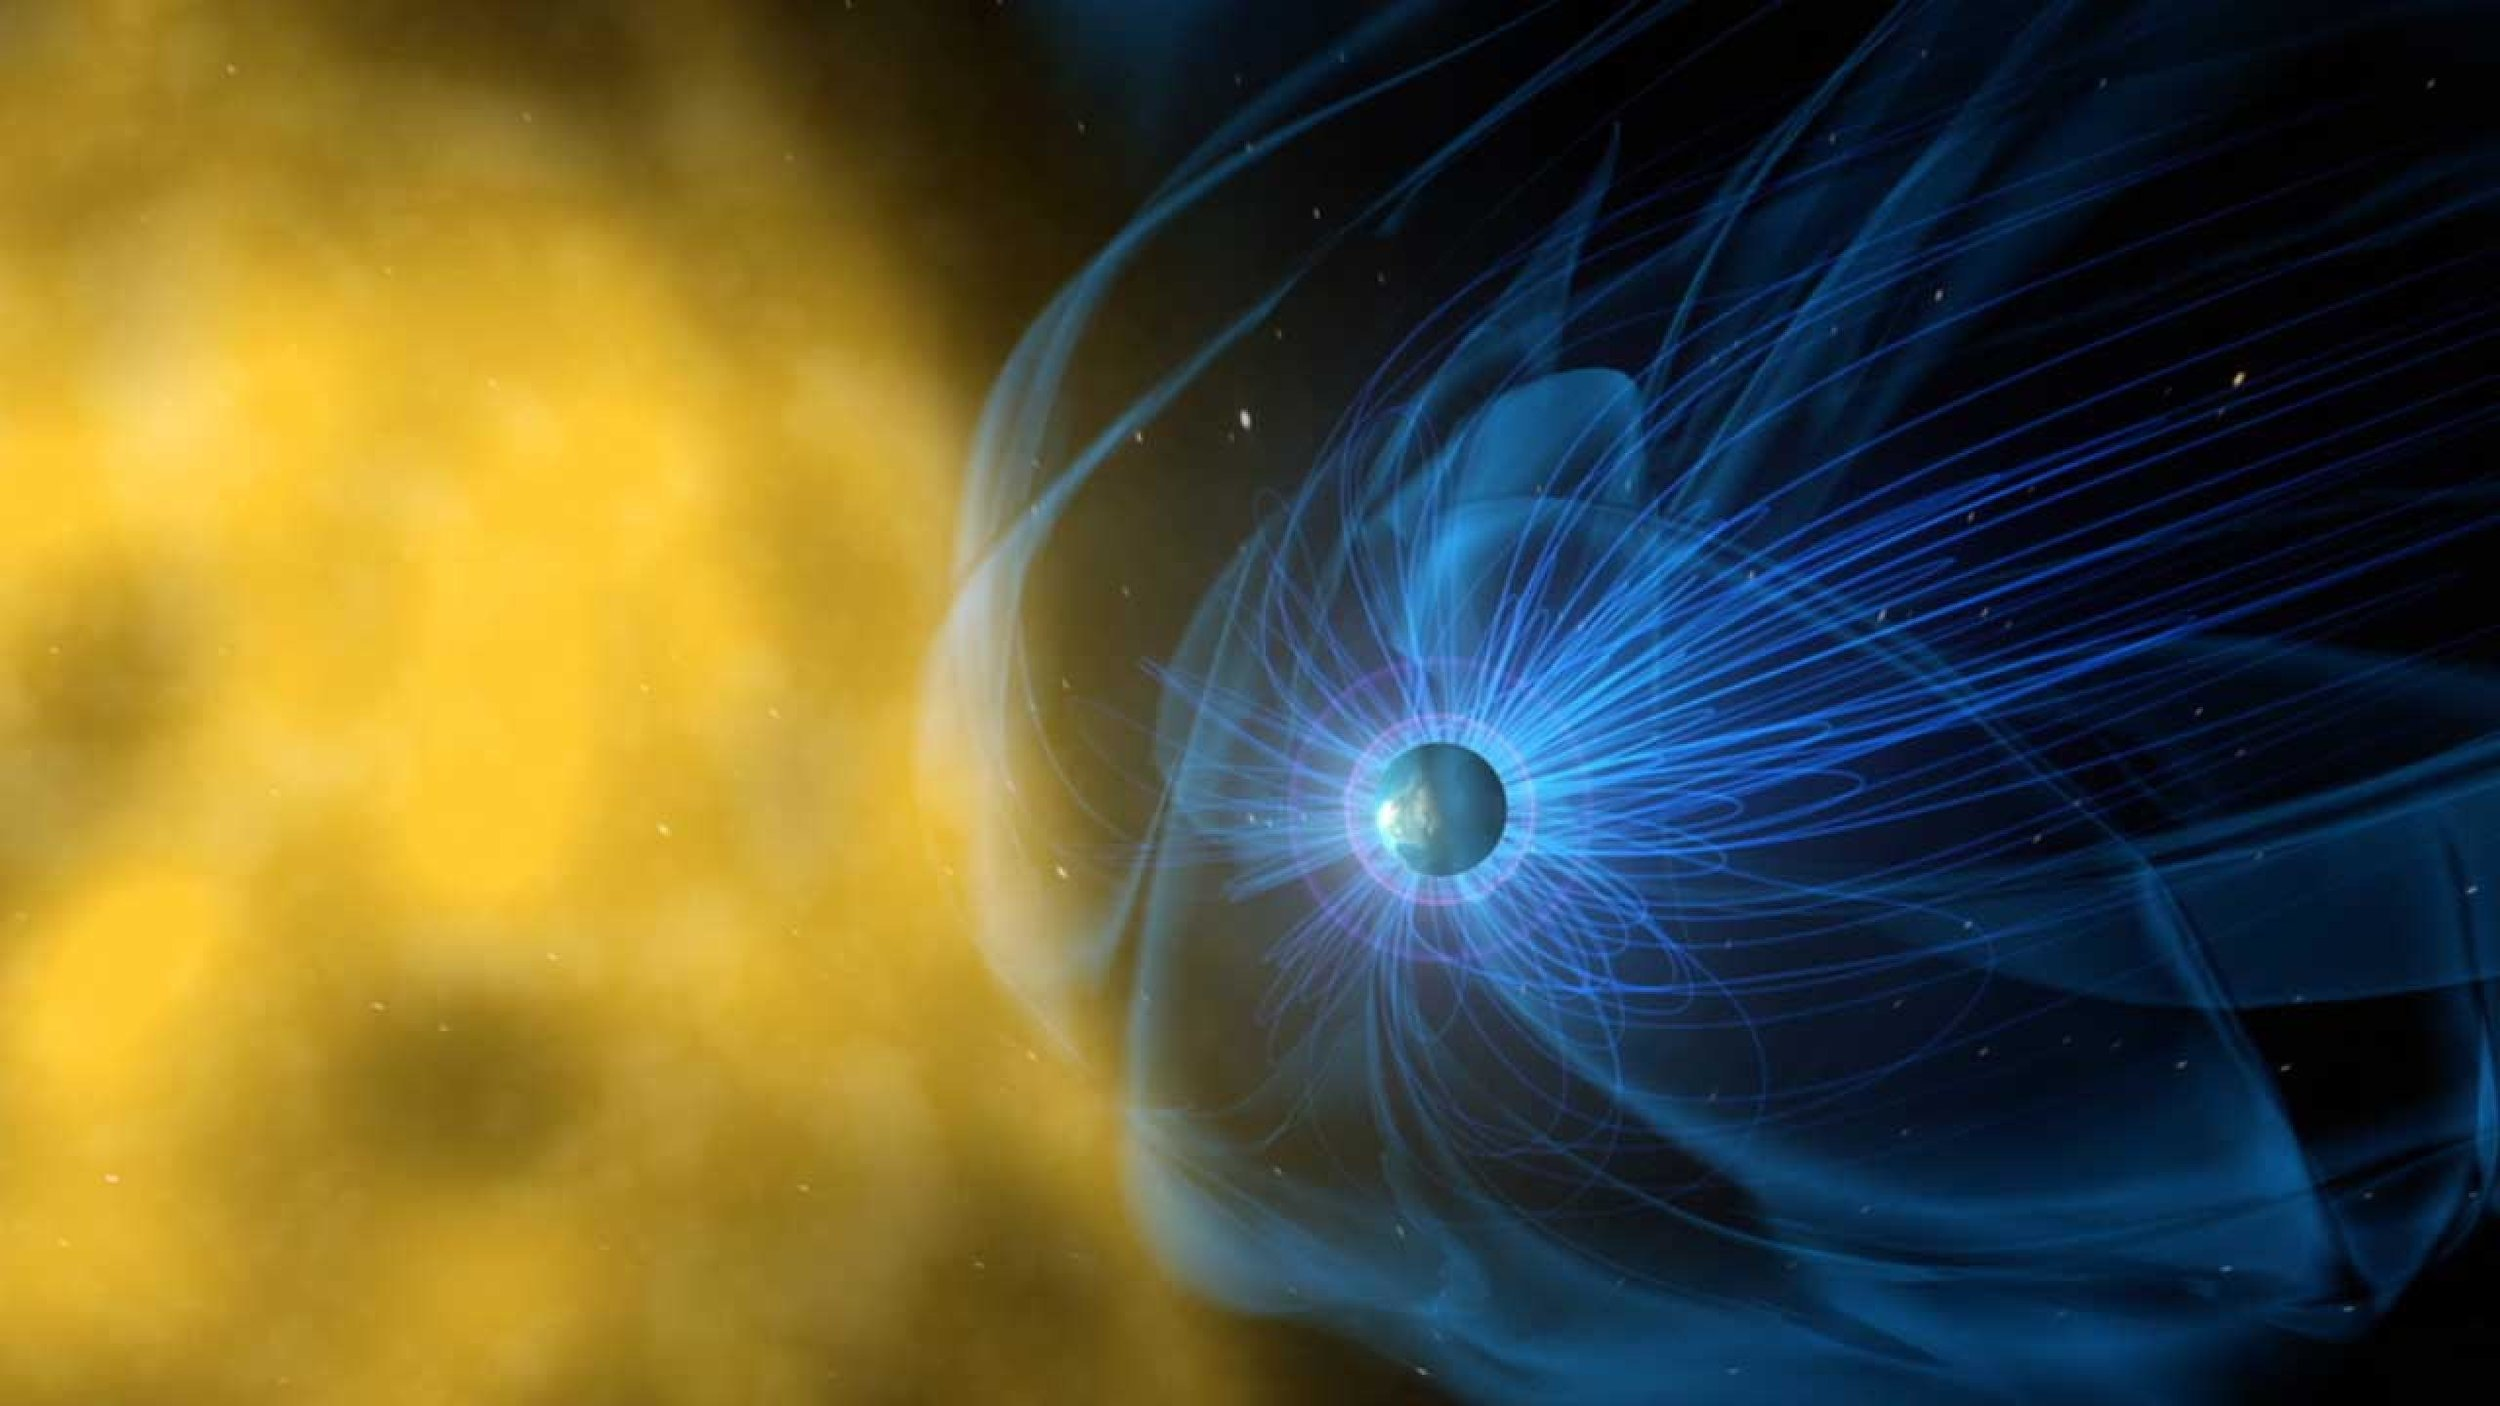 Extrasolar Magnetospheres - The magnetic fields of cool bodies beyond the Solar System.